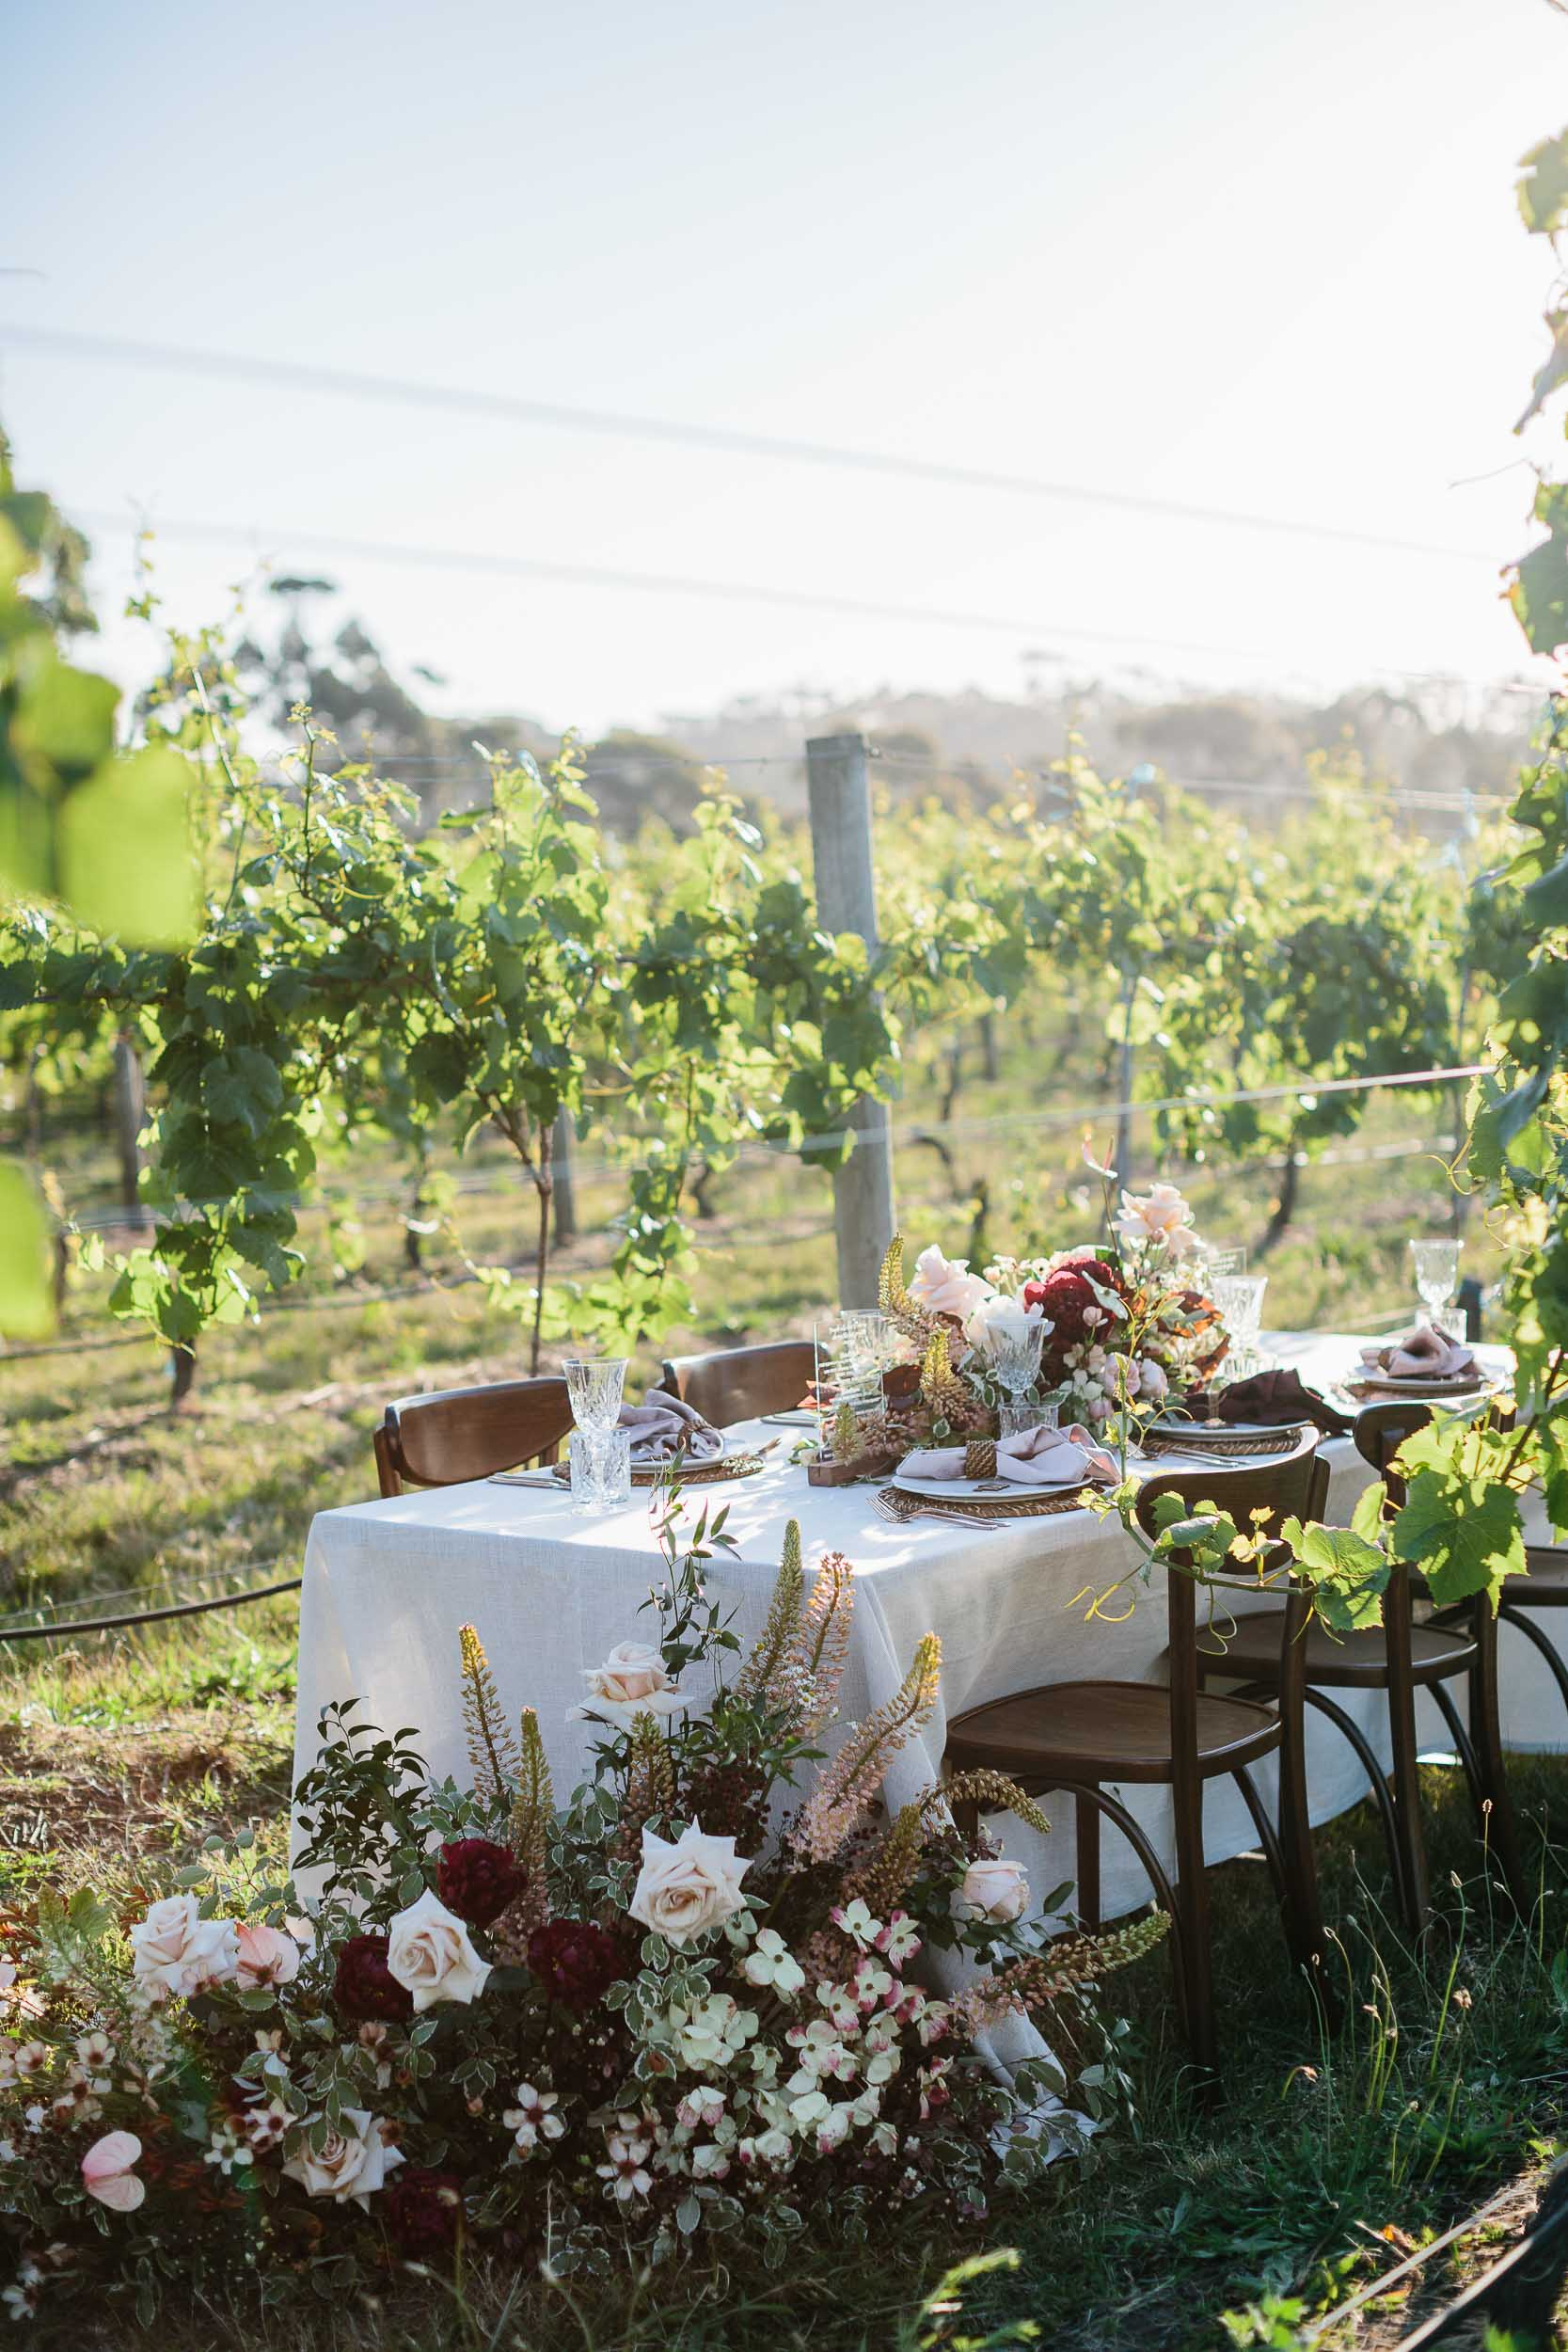 Kas-Richards-Wedding-Ediorial-Photographer-Mornington-Peninsula-Winery-Wedding-Karen-Willis-Holmes-Gown-Pop-up-with-Style-Planners-20.jpg